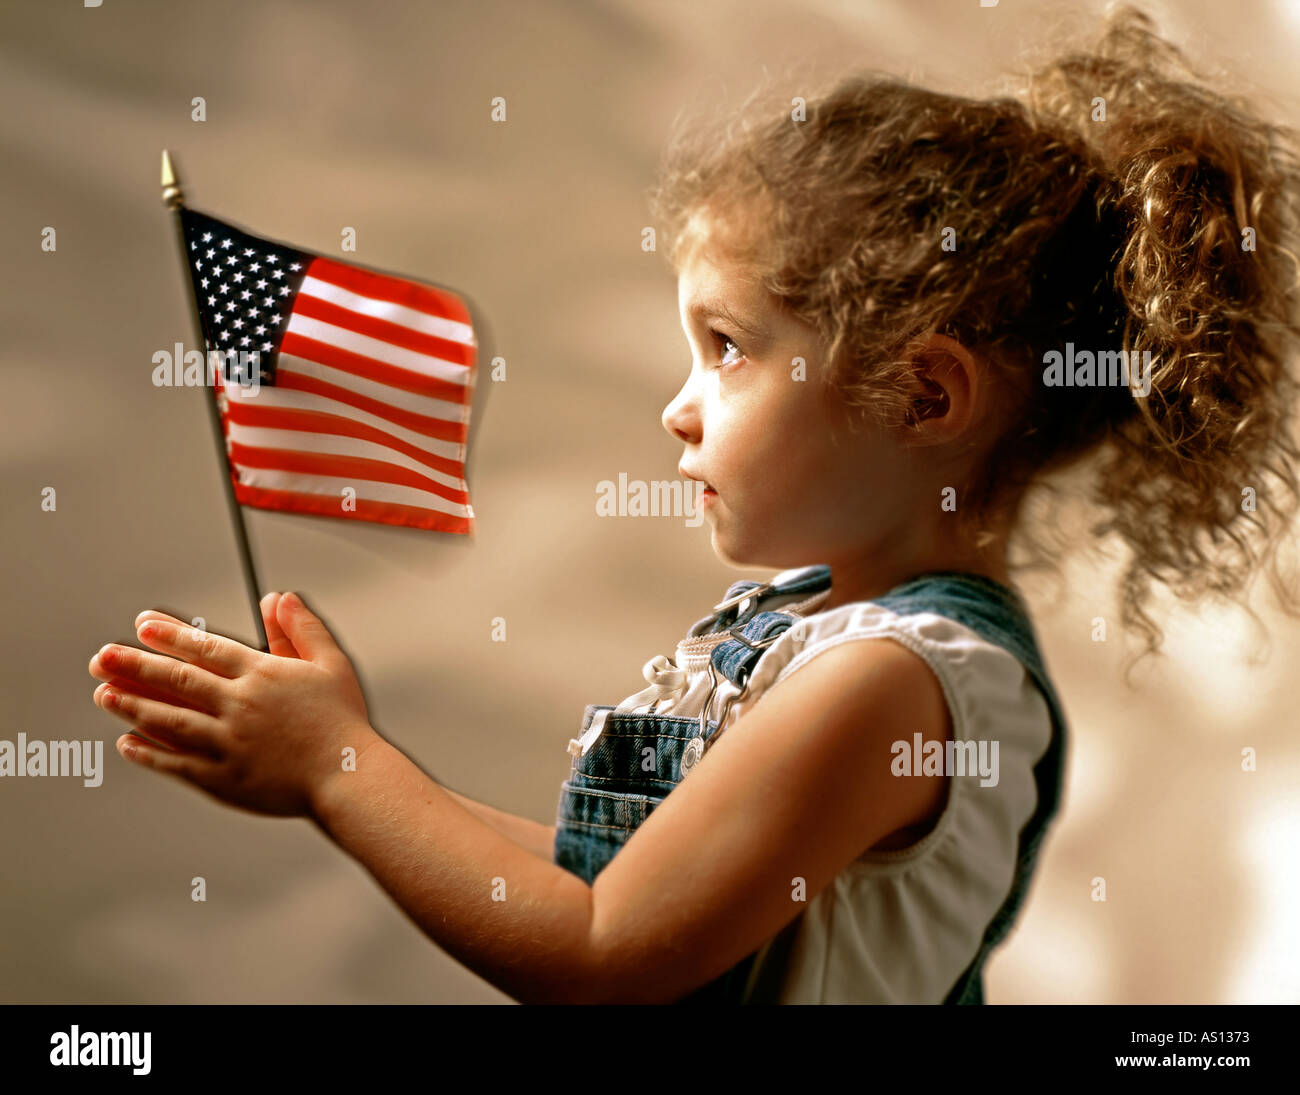 cfcd0f44c5df5 Young girl with brown hair in ponytail holding American flag in both ...